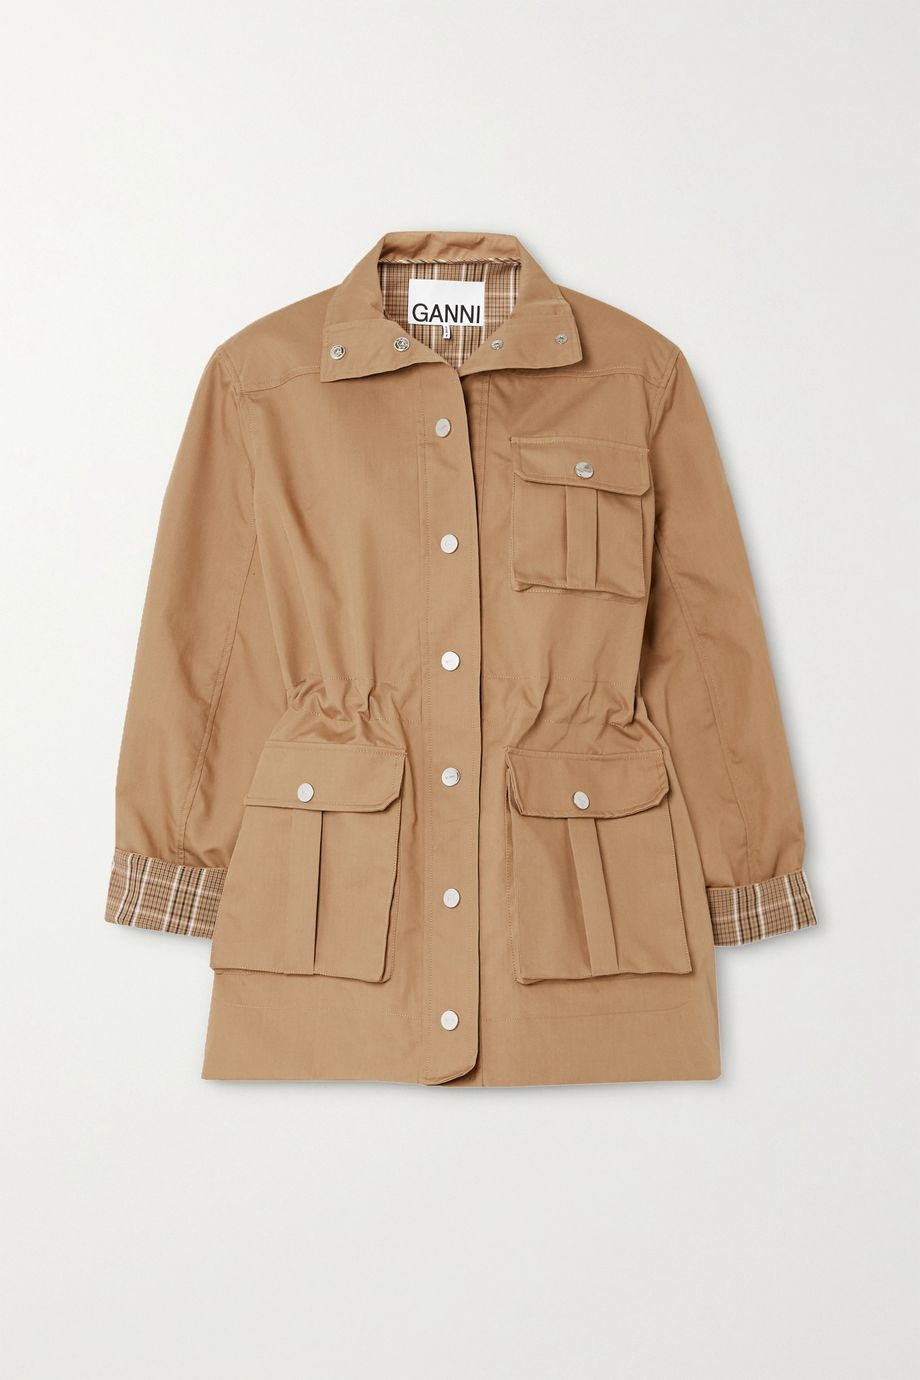 GANNI Cotton-blend canvas jacket